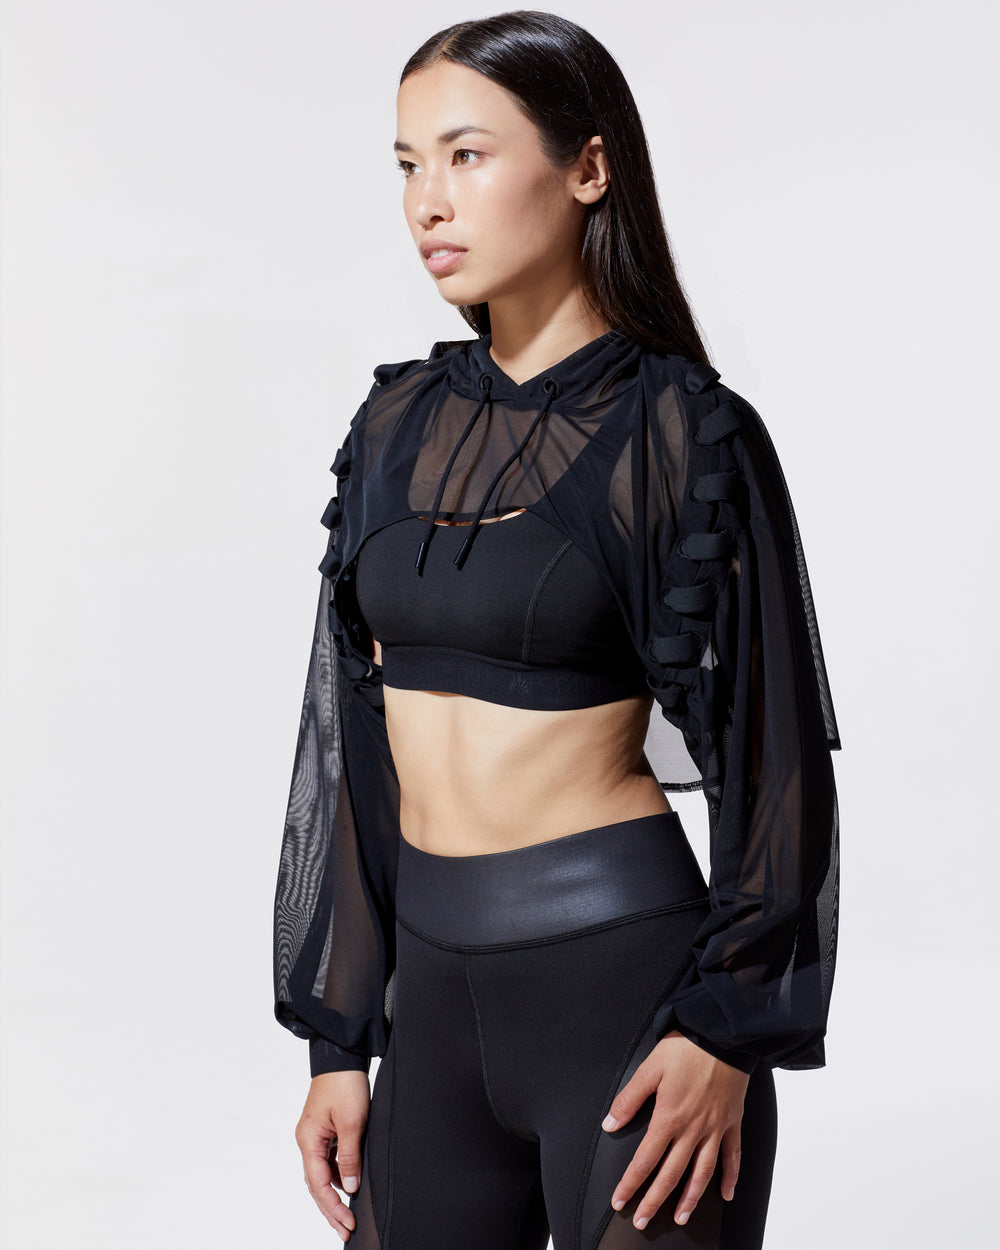 Nero Cut-Out Crop Hoodie - Black